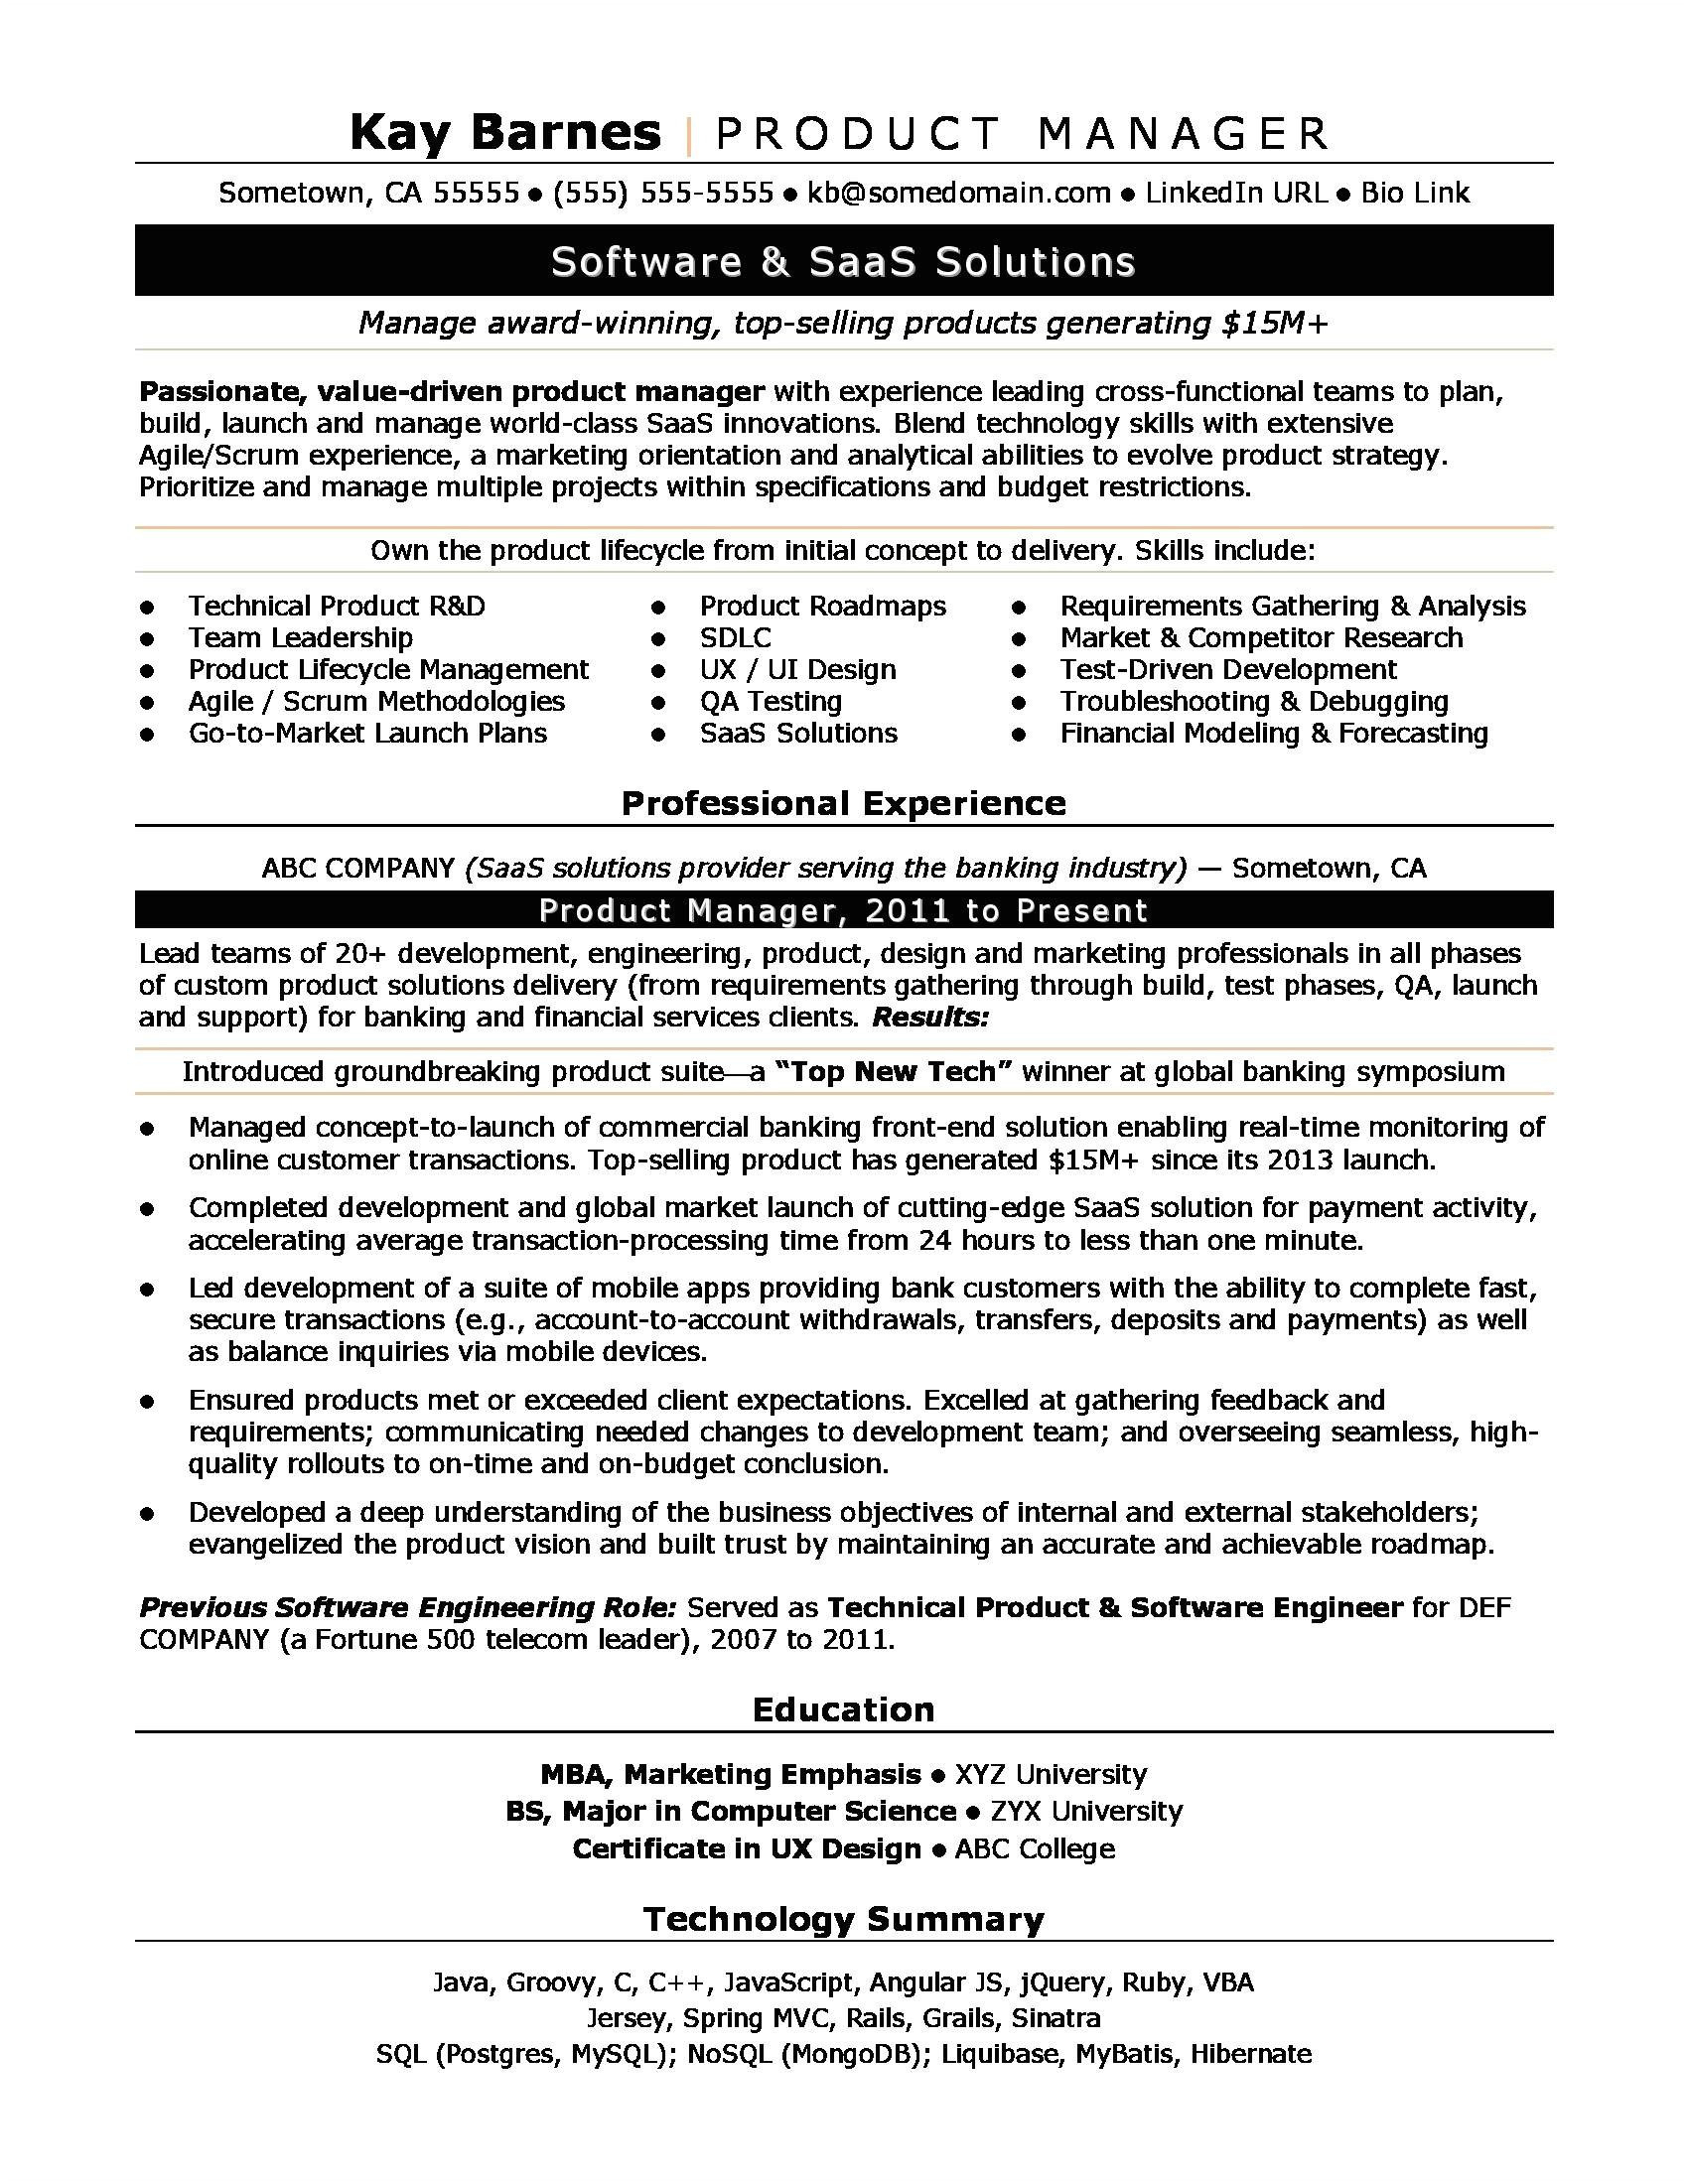 Angularjs Resume Template - Technology Skills Resume Technology Award Certificate Templates Best